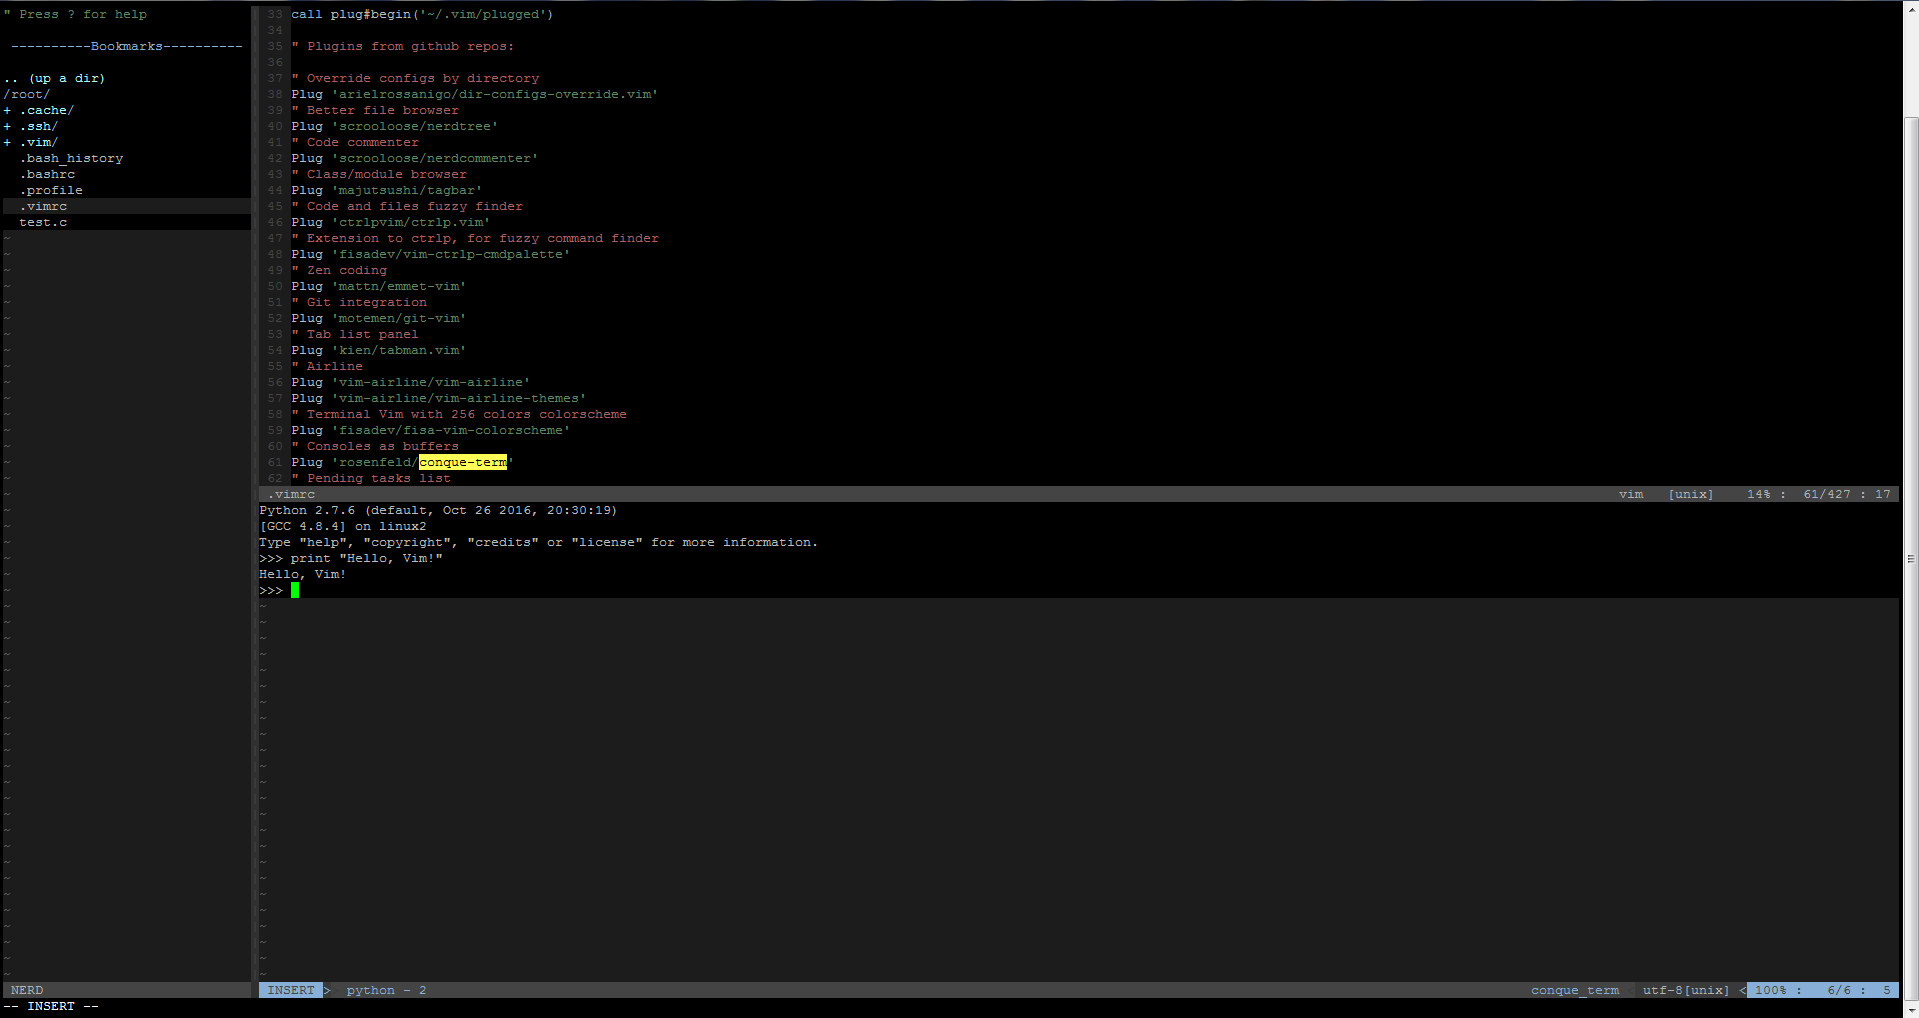 vim-conque-term-screenshot.png